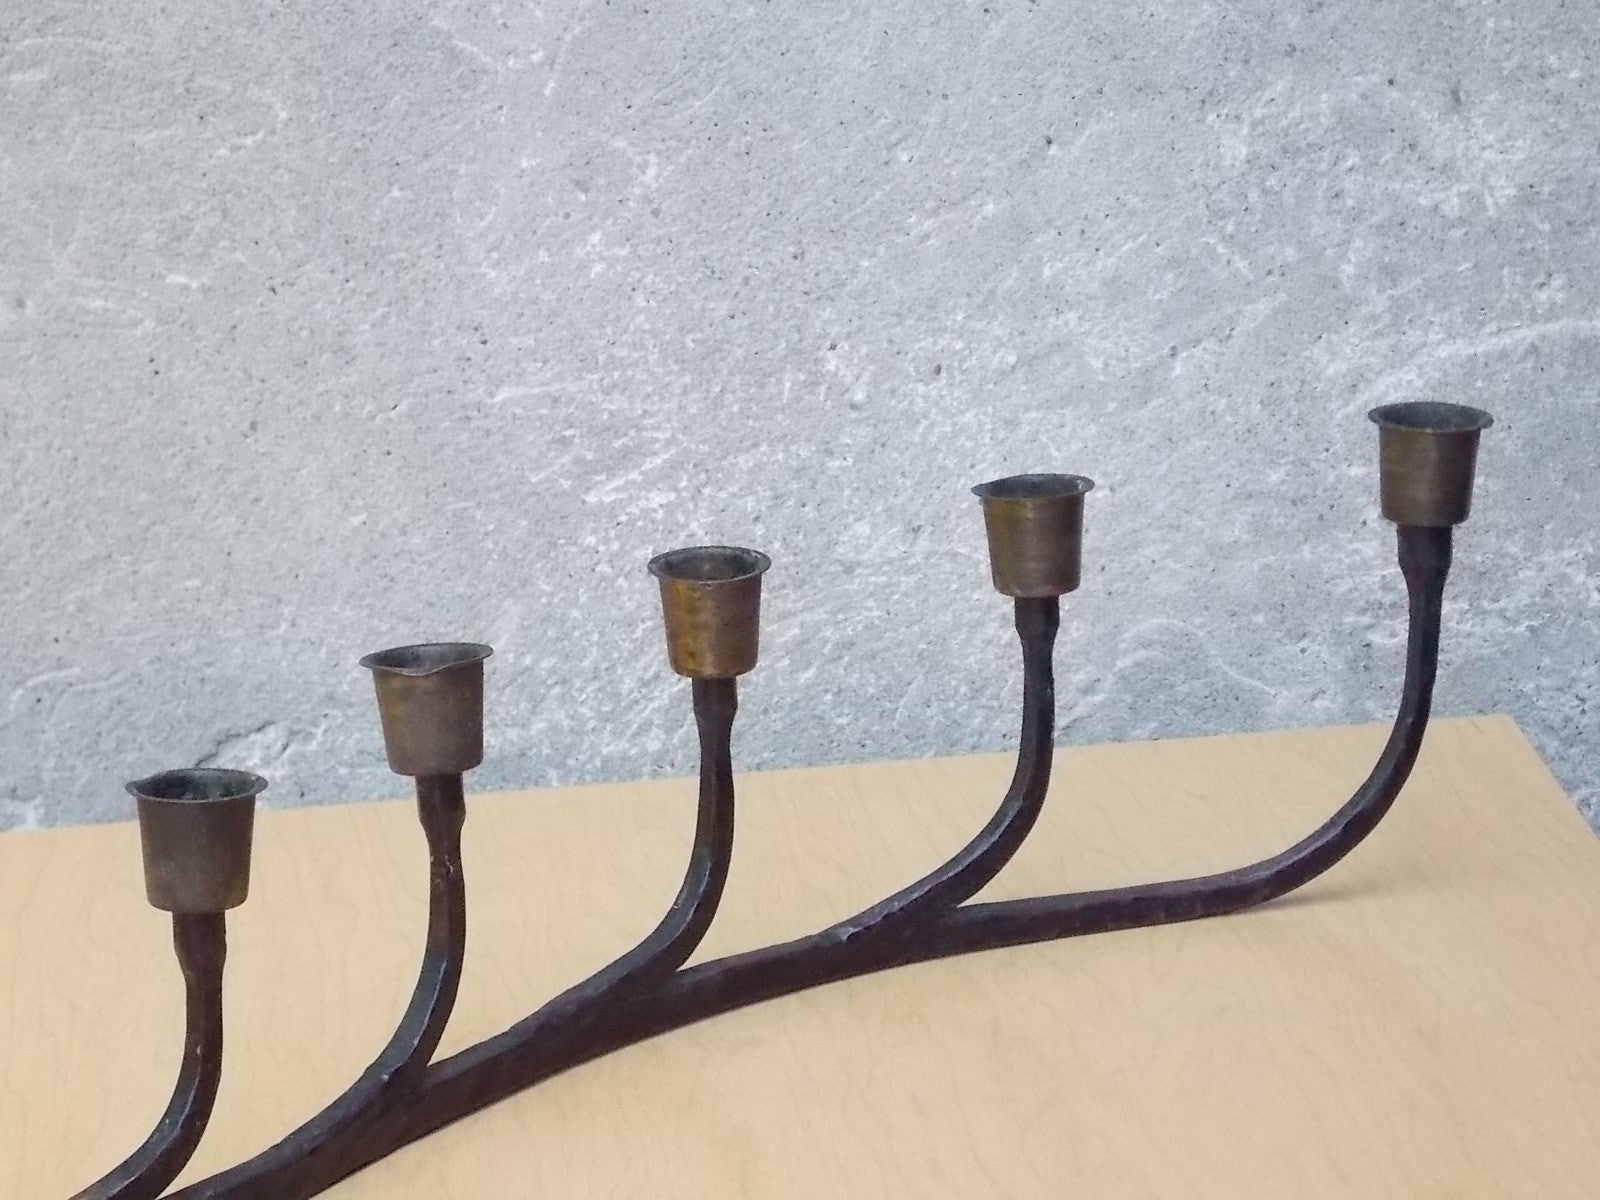 Black Hand Forged Wrought Iron 7 Candle Holder Rustic Centerpiece I Like Mikes Mid Century Modern